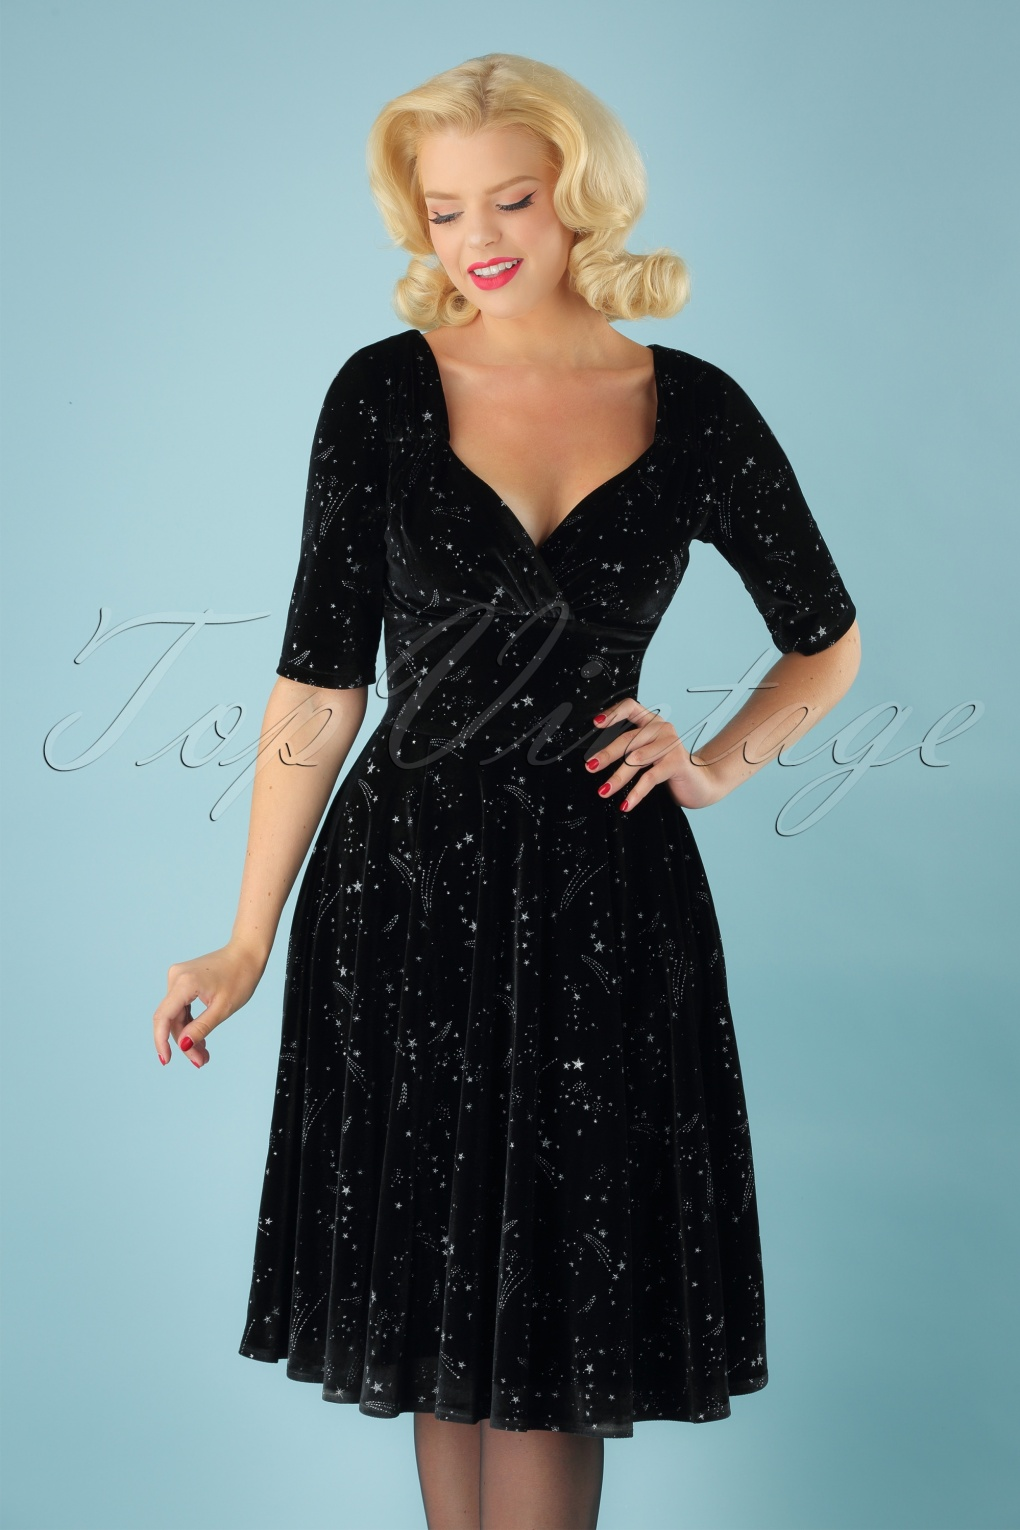 What Did Women Wear in the 1950s? 1950s Fashion Guide 50s Trixie Make A Wish Doll Dress in Black £62.29 AT vintagedancer.com